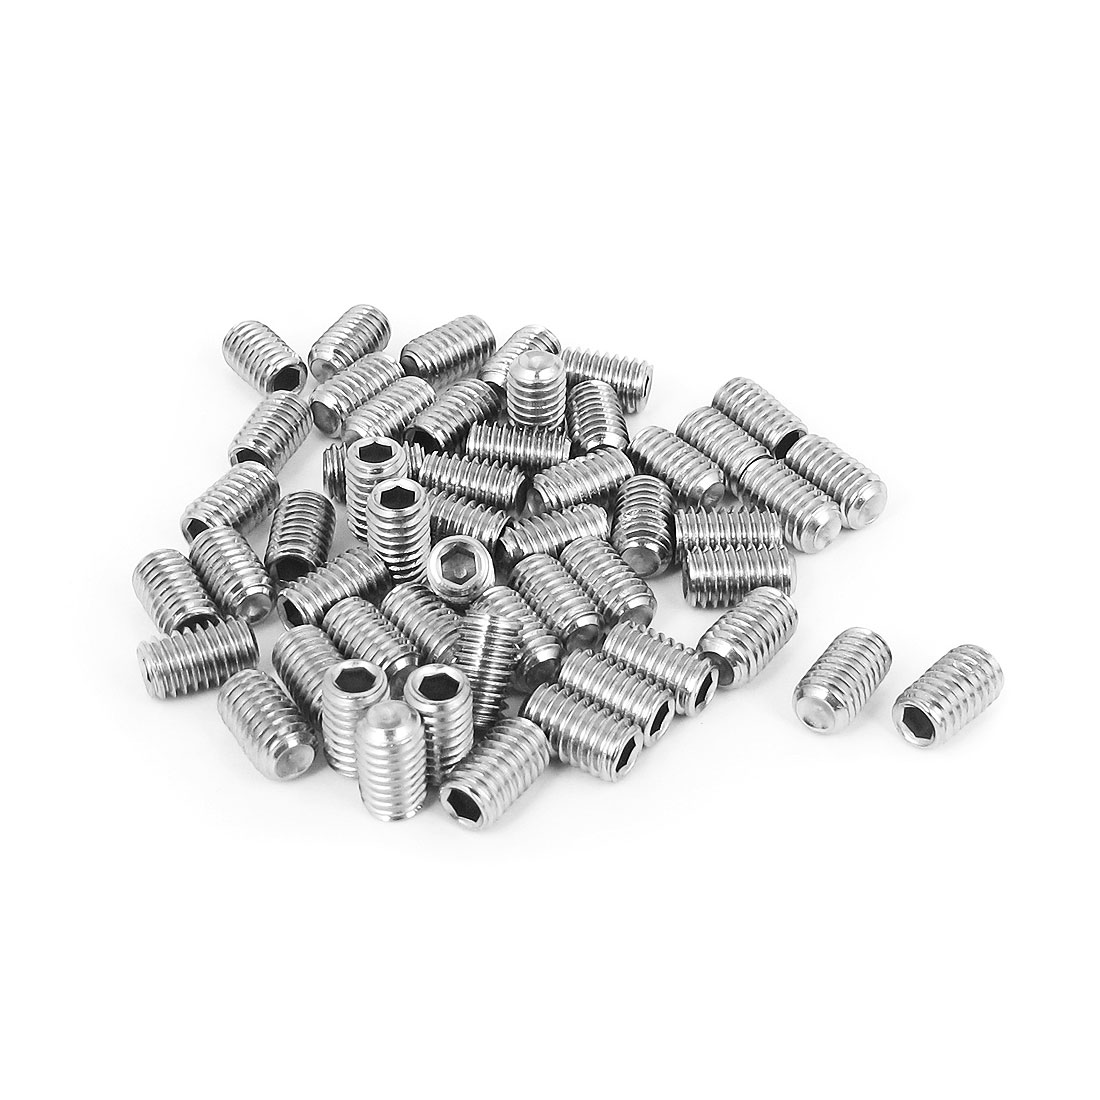 M6x10mm Stainless Steel Hex Socket Set Cap Point Grub Screws Silver Tone 50pcs